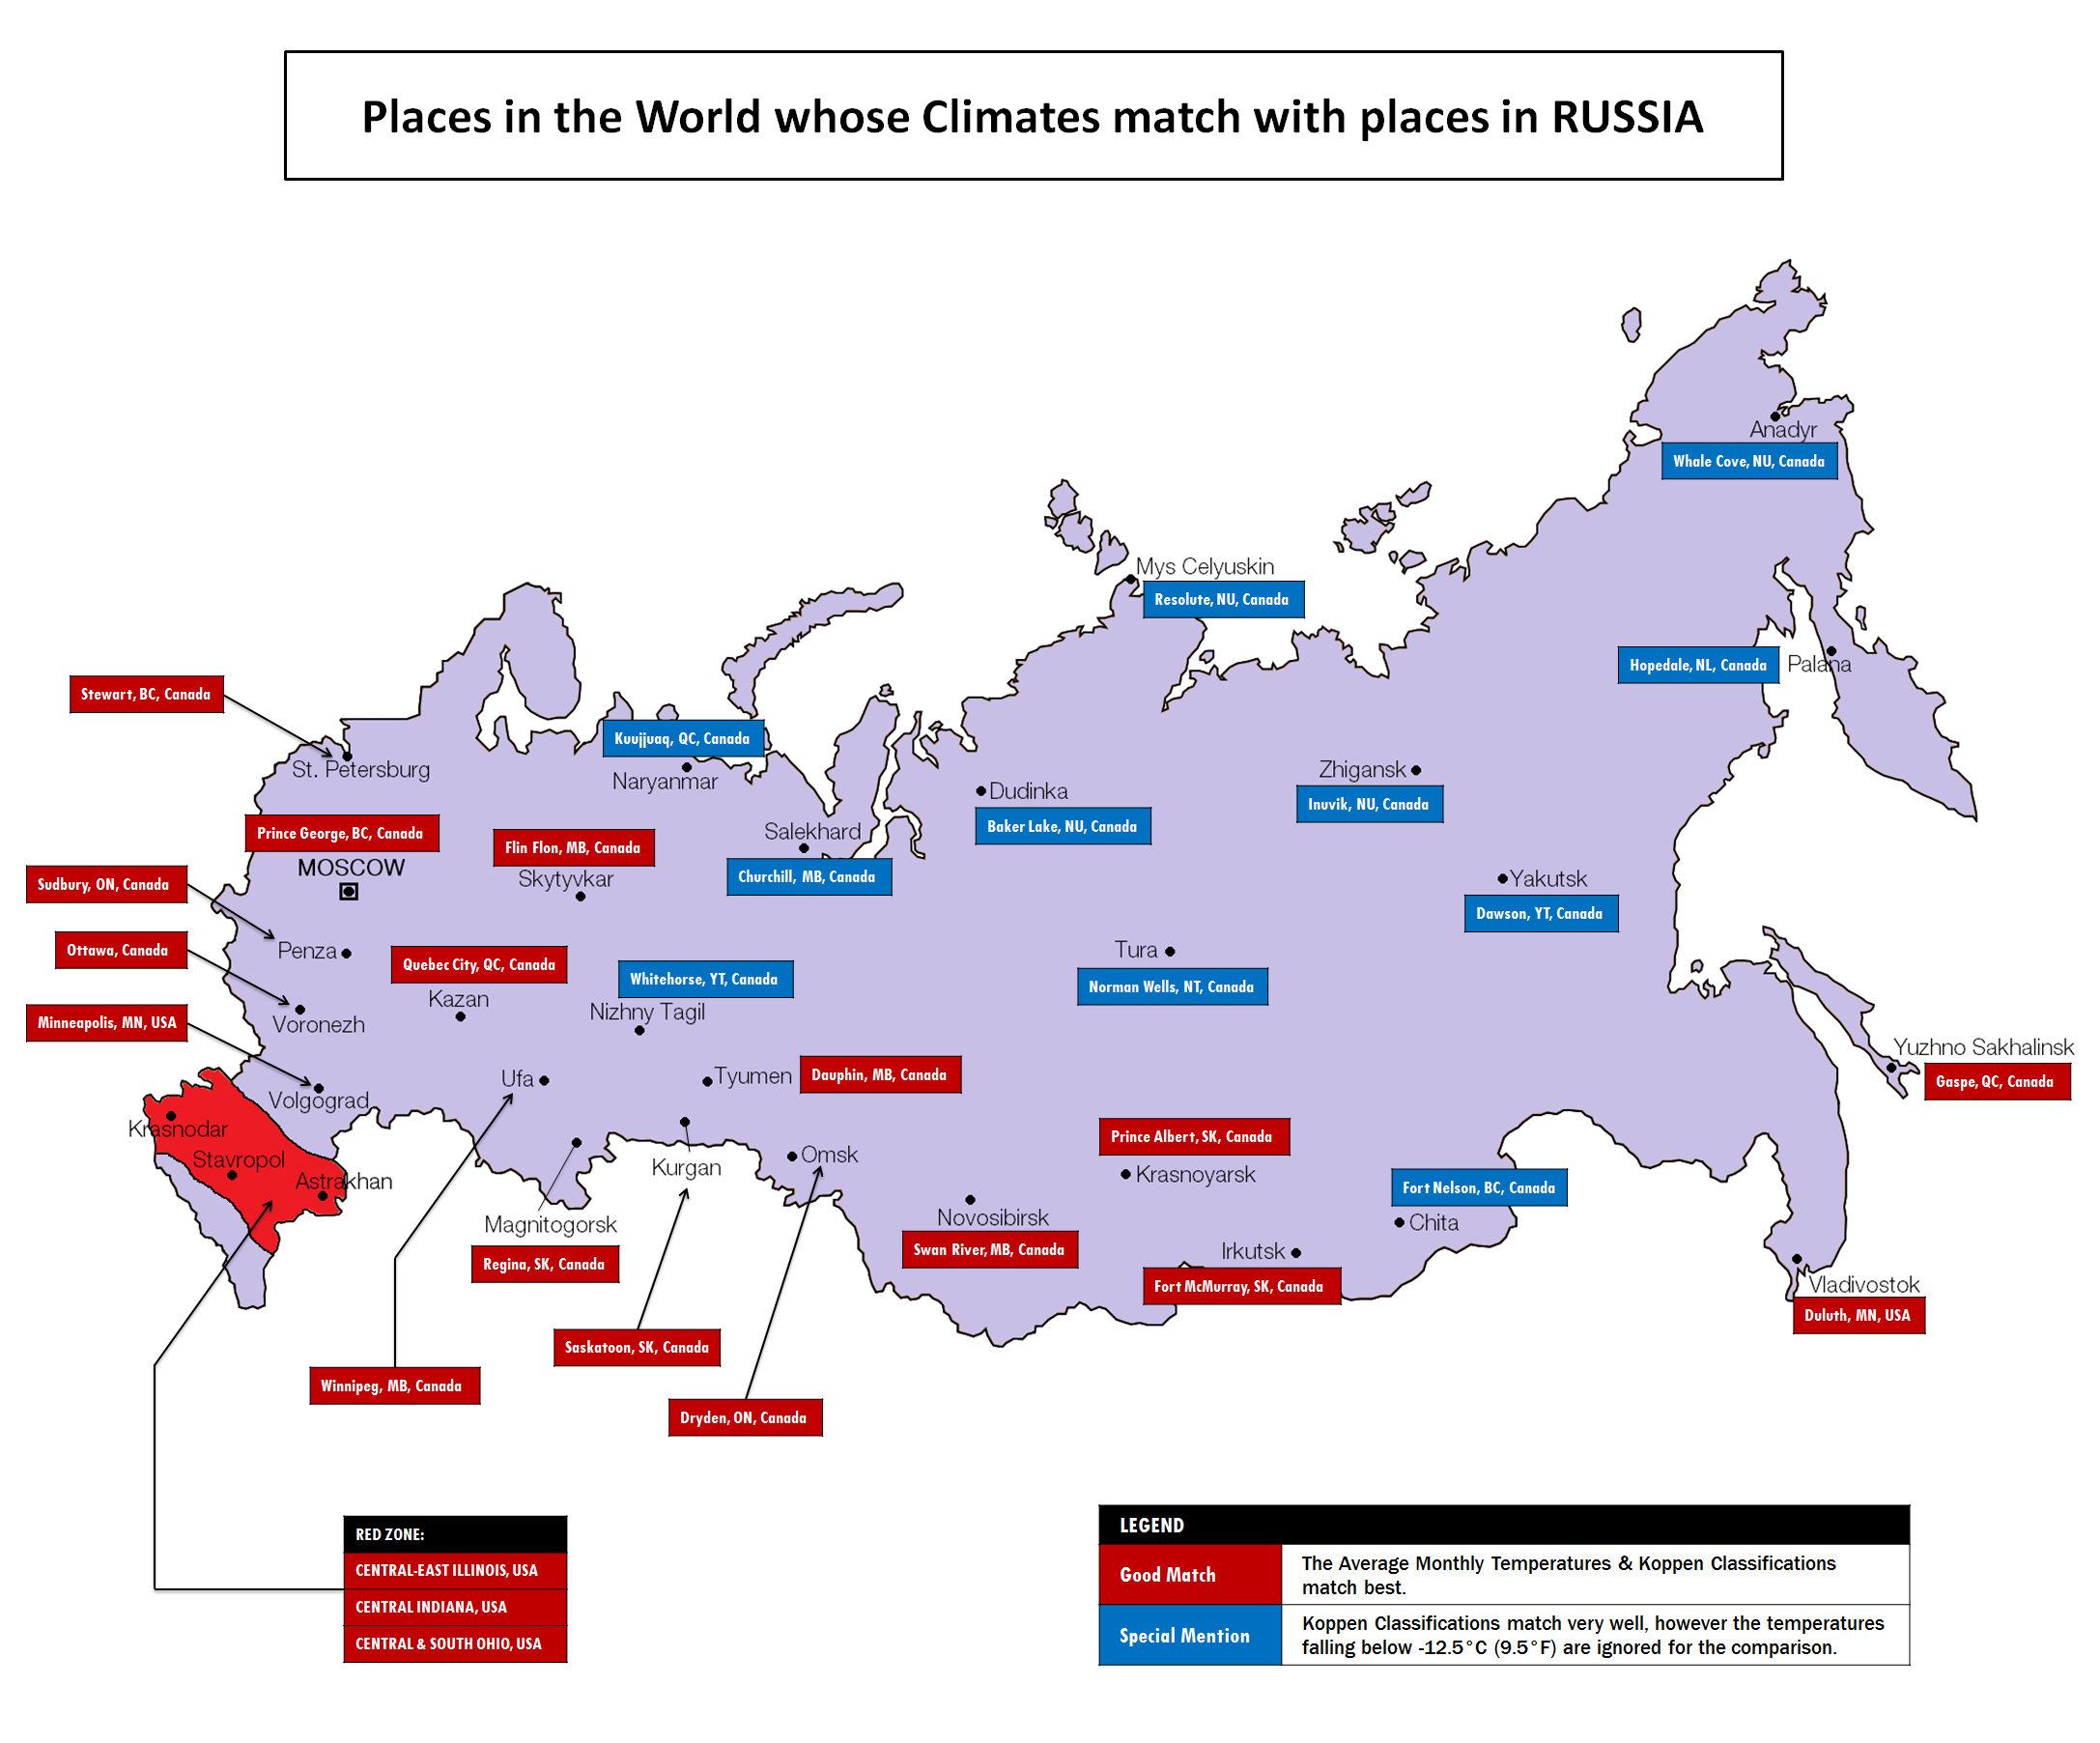 Places in Canada/USA whose climates match with Russia | MAPS